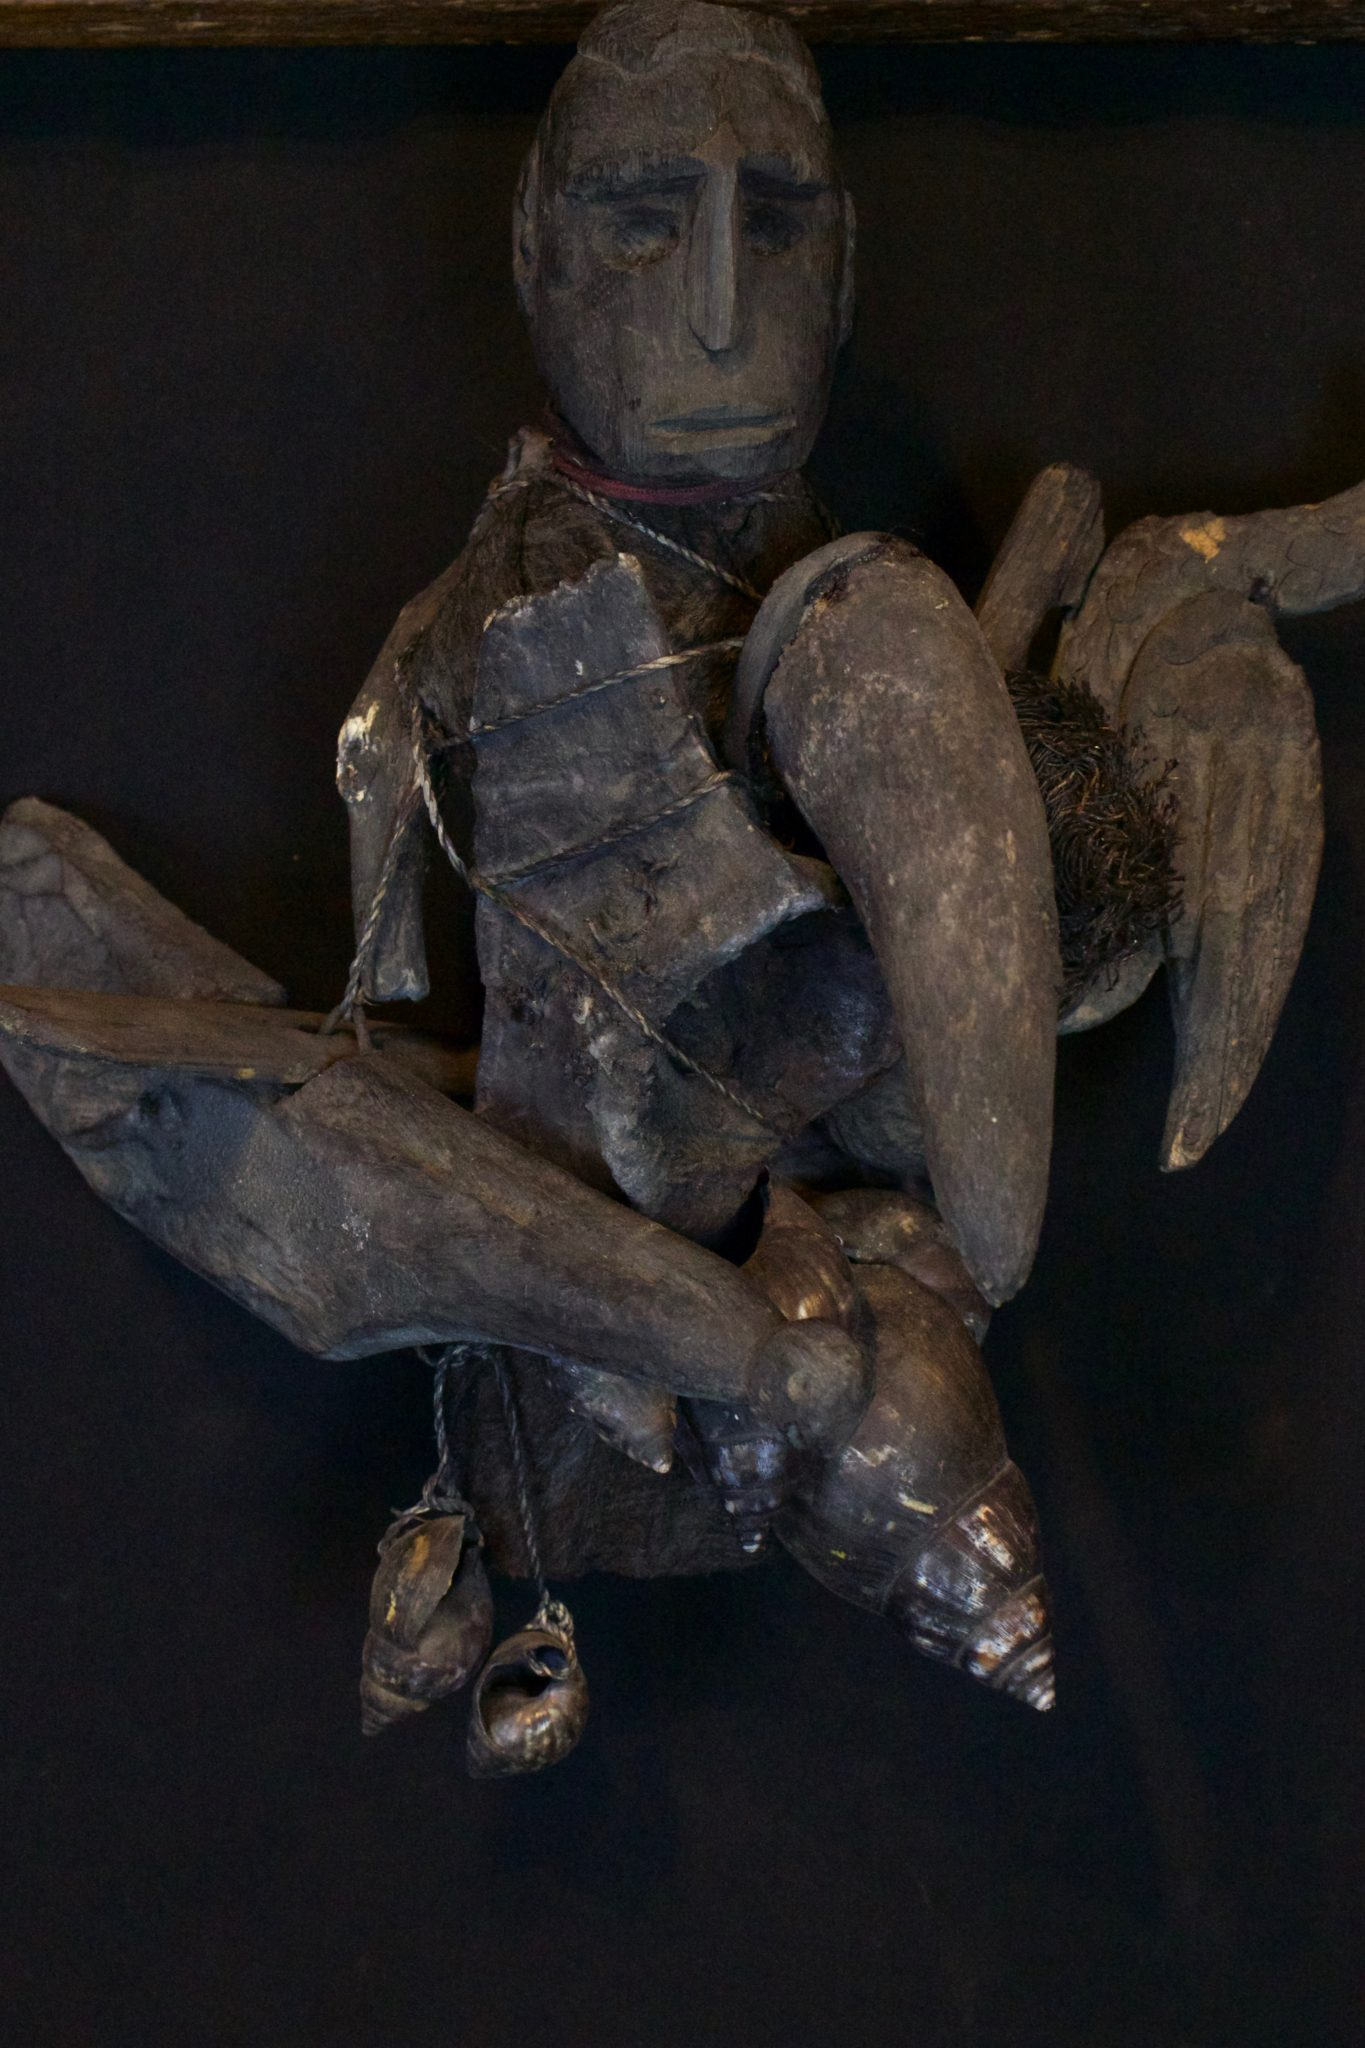 """Shaman Healing Fetish Rattle, Lombok Island, Lesser Sunda Islands, Indonesia, Mid to late 20th c, Wood pigmented with soot, bone, cloth, seed pod and shells, patinated with age and use. Used in healing rituals. 12"""" x 12"""" x 12"""", $1300."""